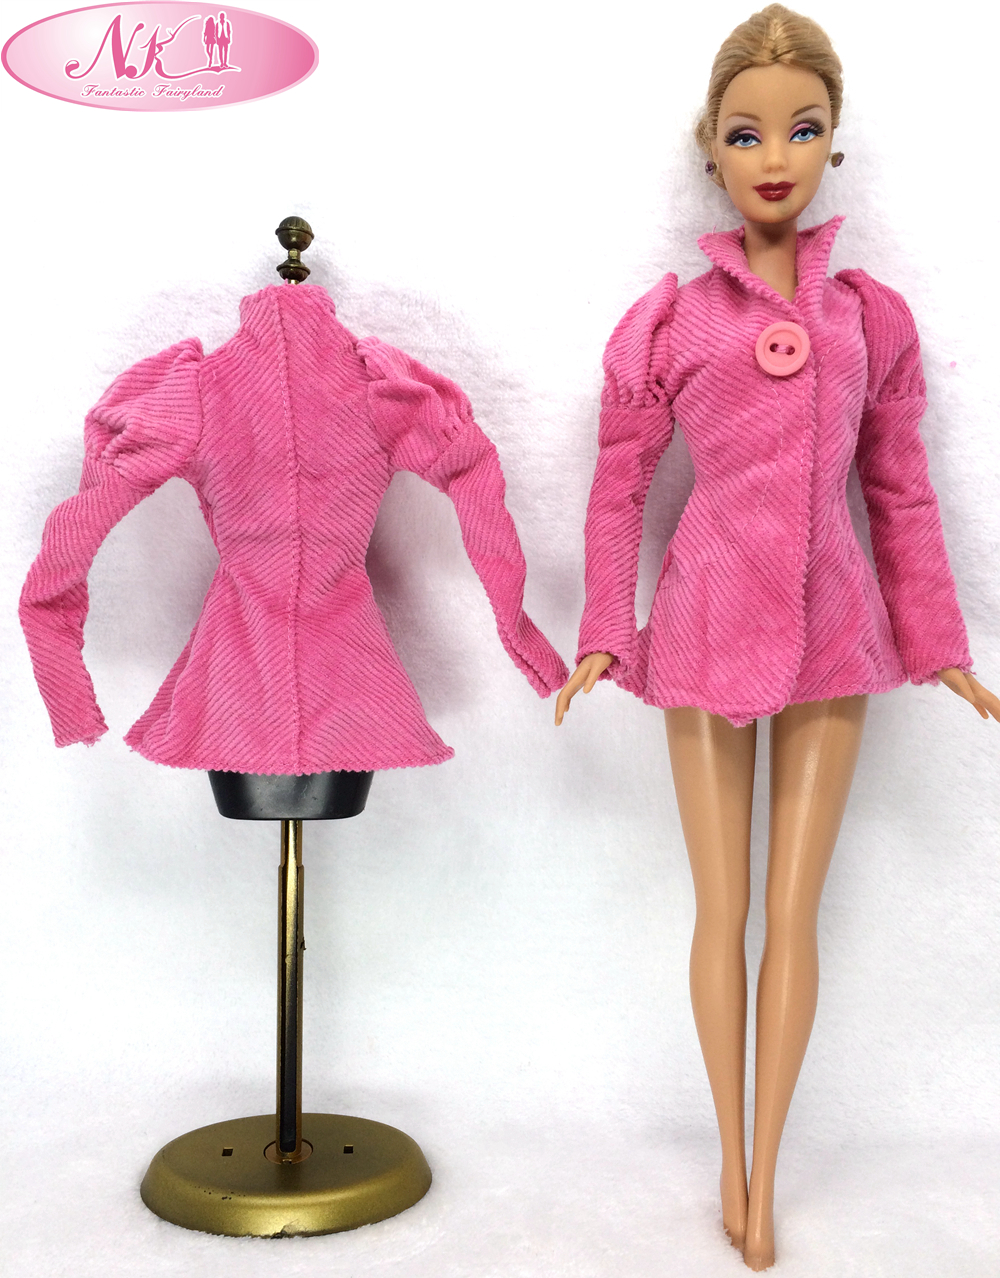 NK One Set Unique Doll Garments Trend Coat Winter Put on Clothes Pink Outfit For Barbie Doll Finest Reward For Woman' Doll Snowsuit